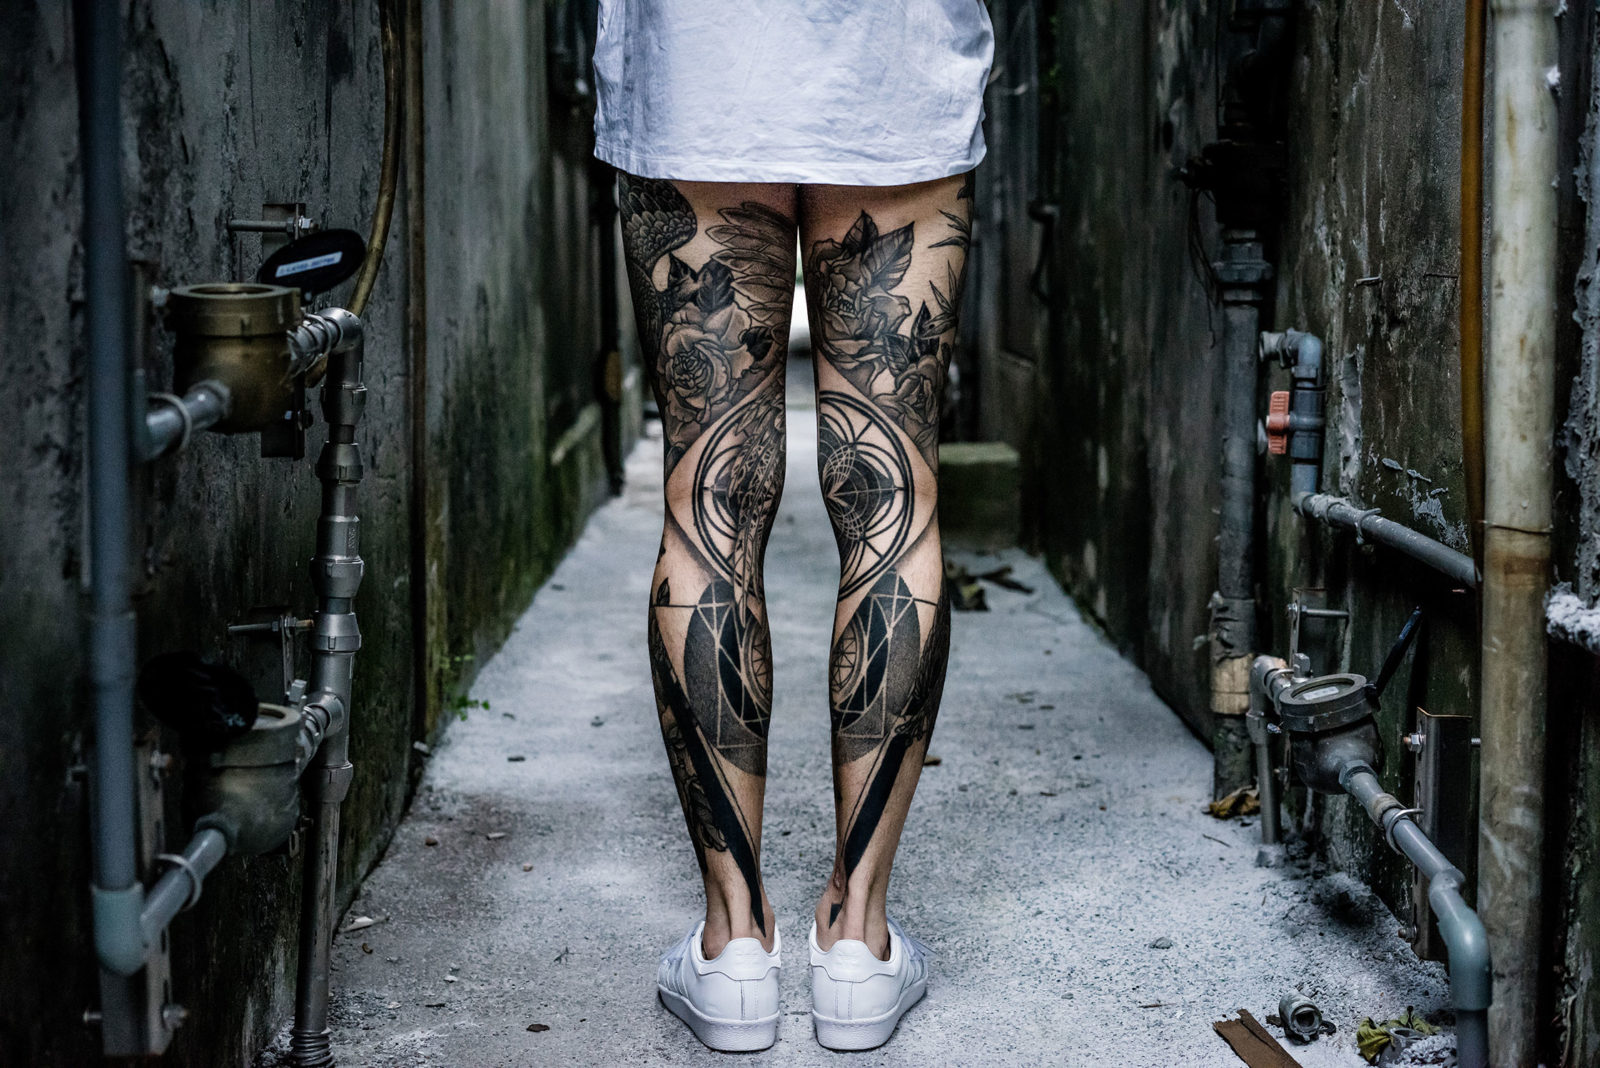 (EN) Maxime's unique tattoo style combines his many interests and influences across history, philosophy, art and science